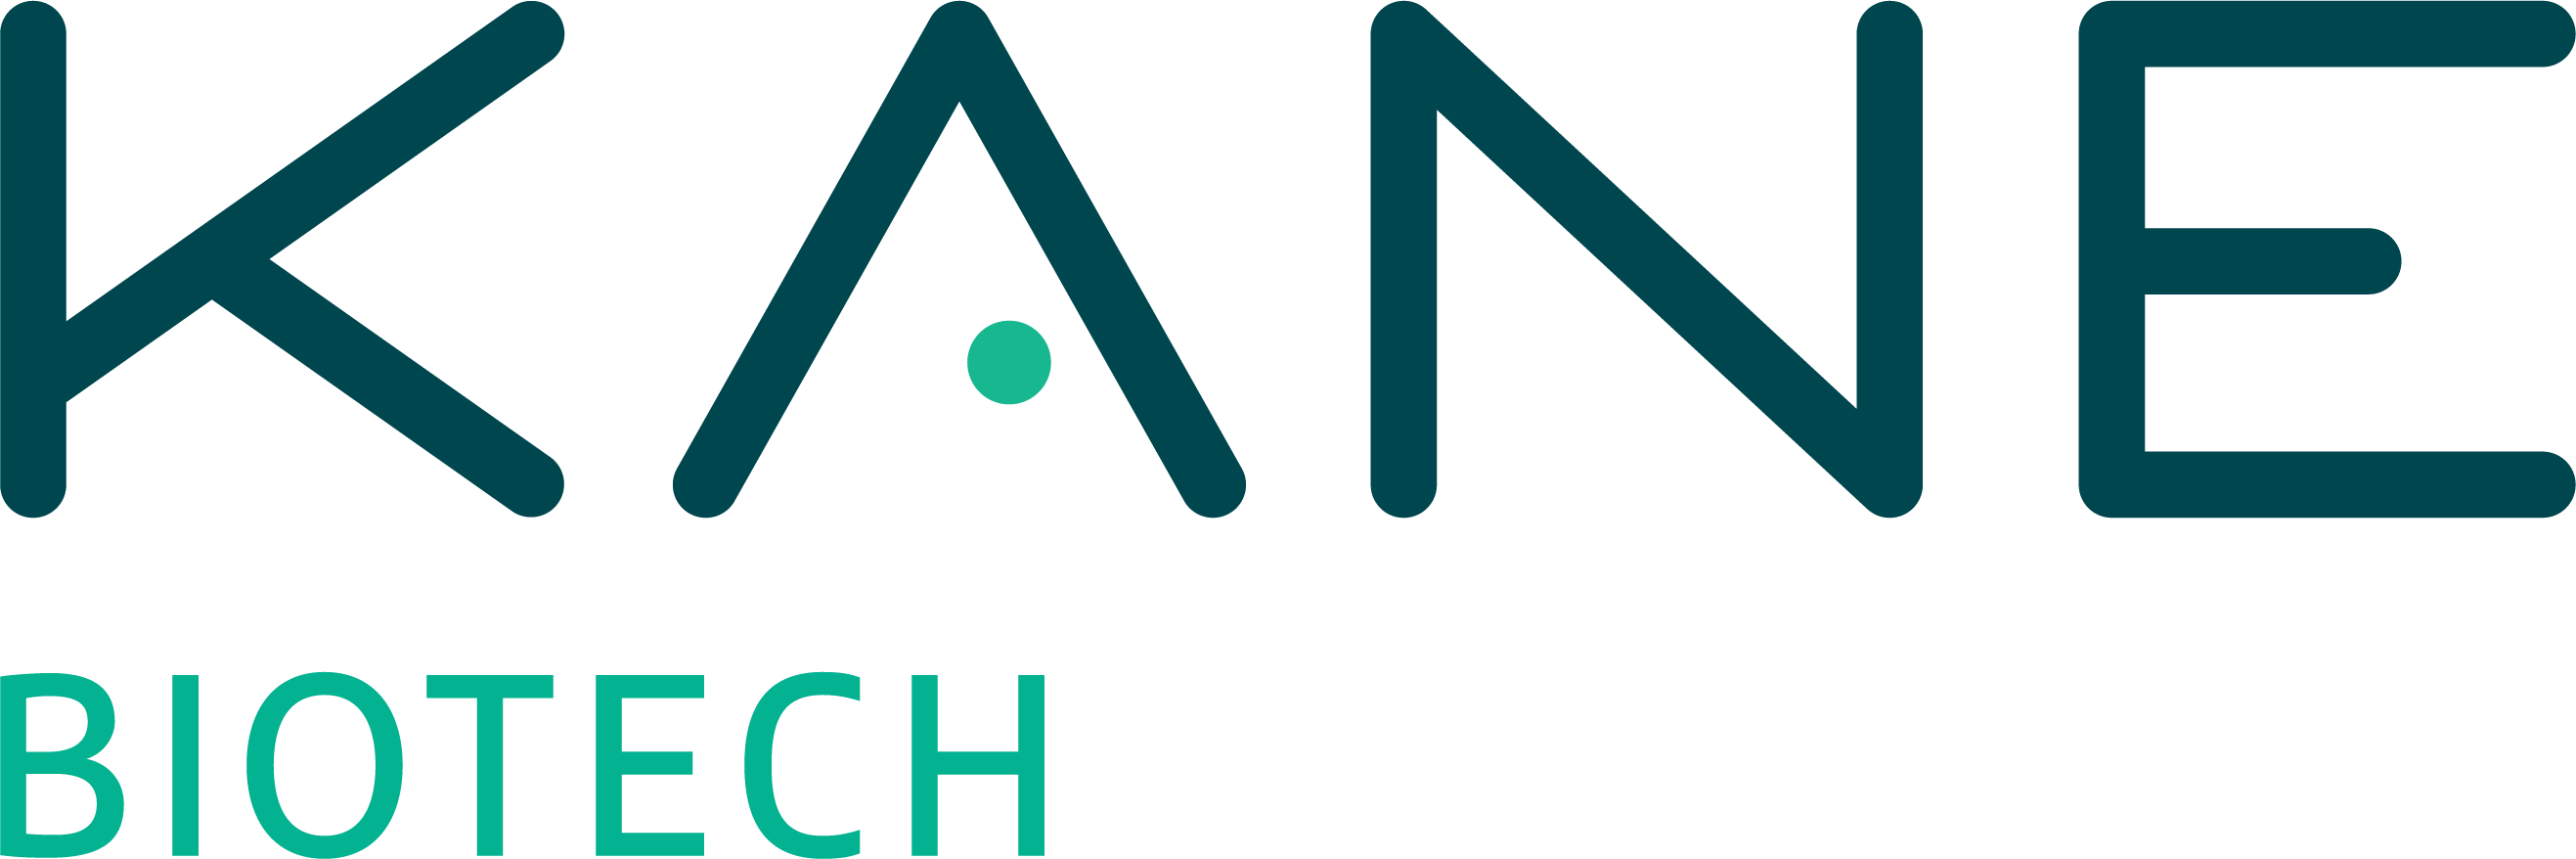 Kane Biotech Enters into Credit Facility with Pivot Financial